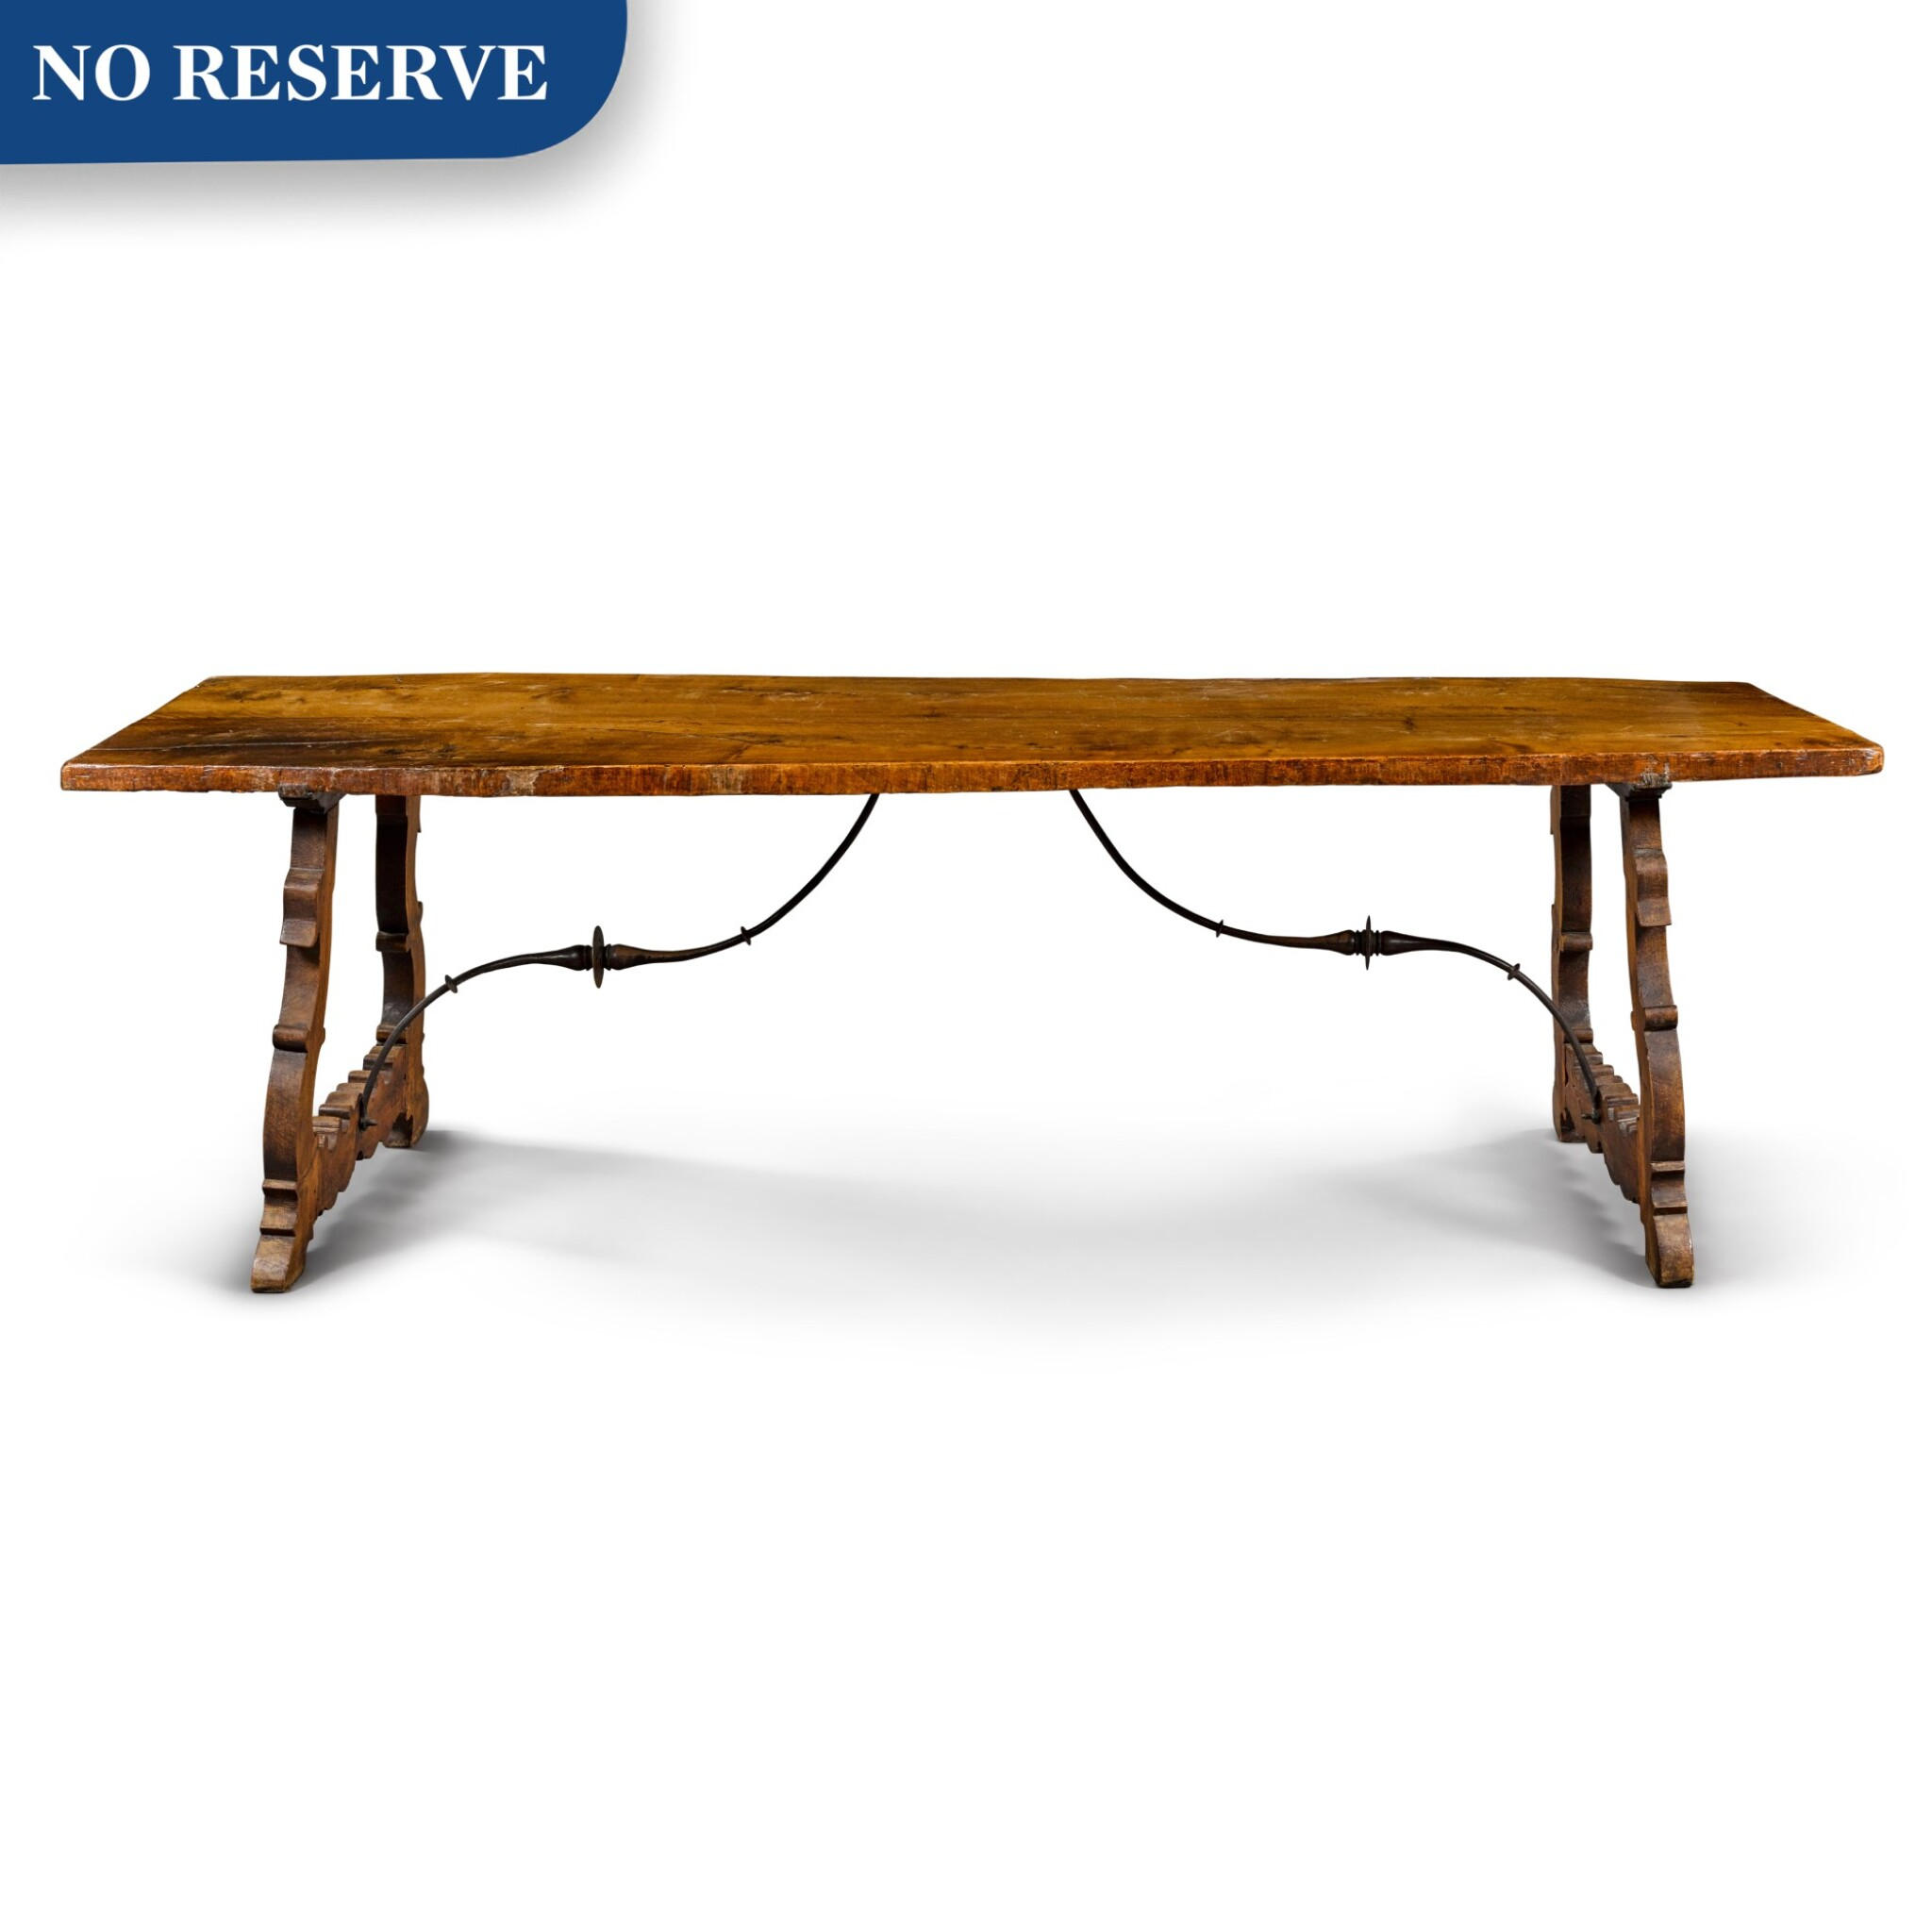 View full screen - View 1 of Lot 11. A Spanish Baroque walnut trestle table, 17th century.